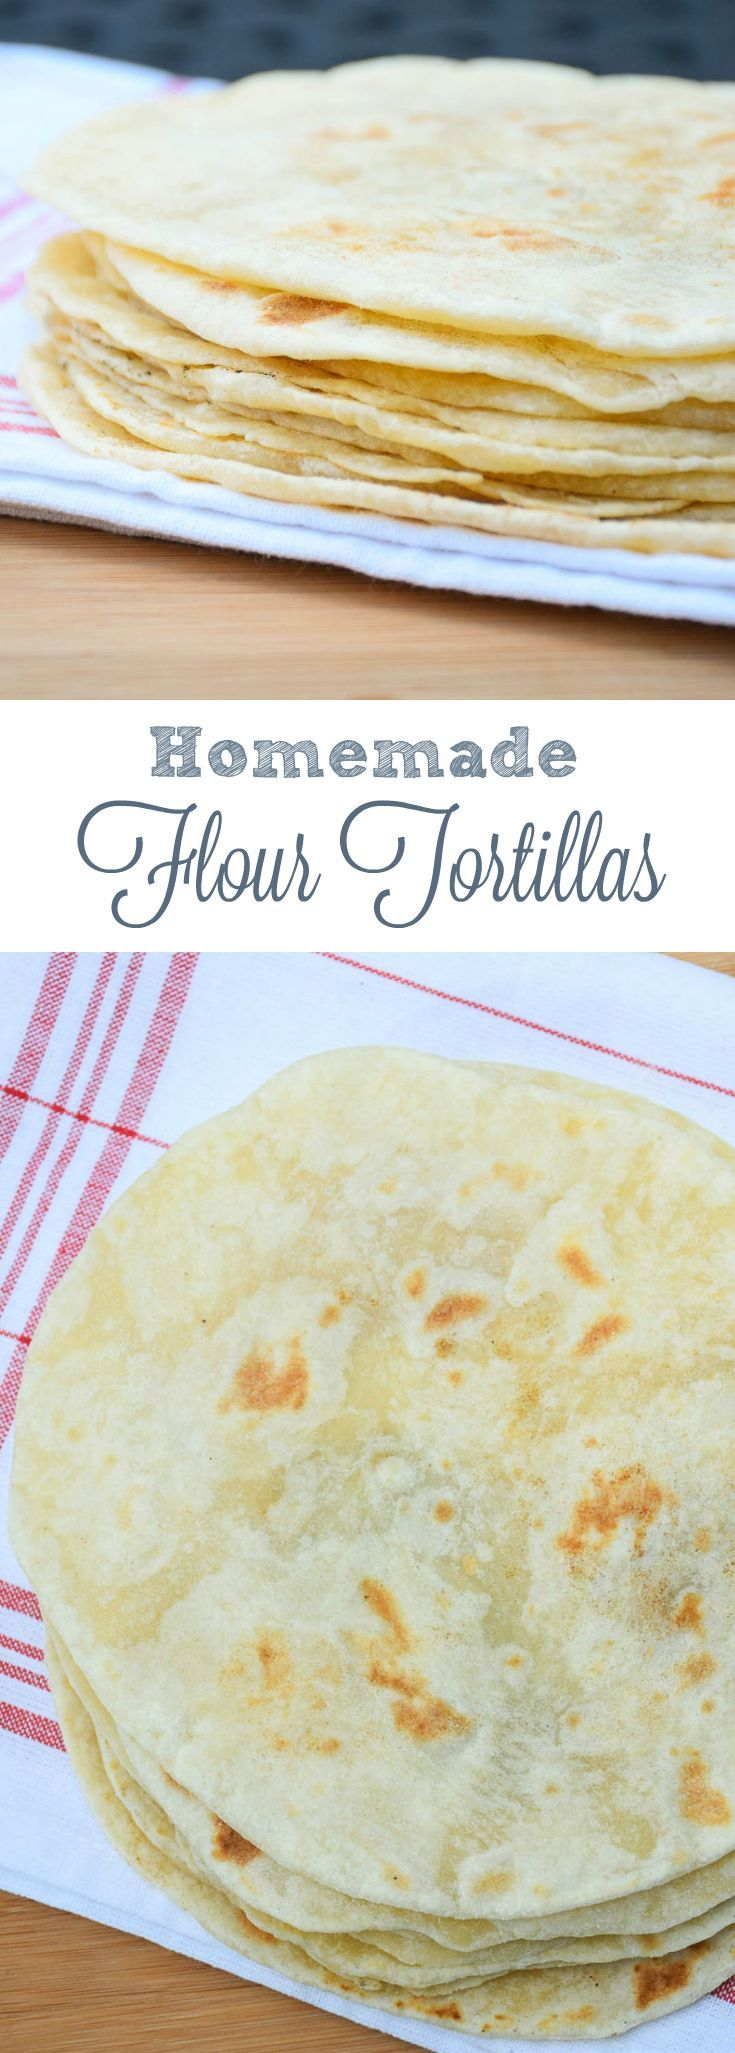 Homemade Flour Tortillas made with only 4 ingredients you likely already have in your pantry These are easy to make and taste far better than store-bought!